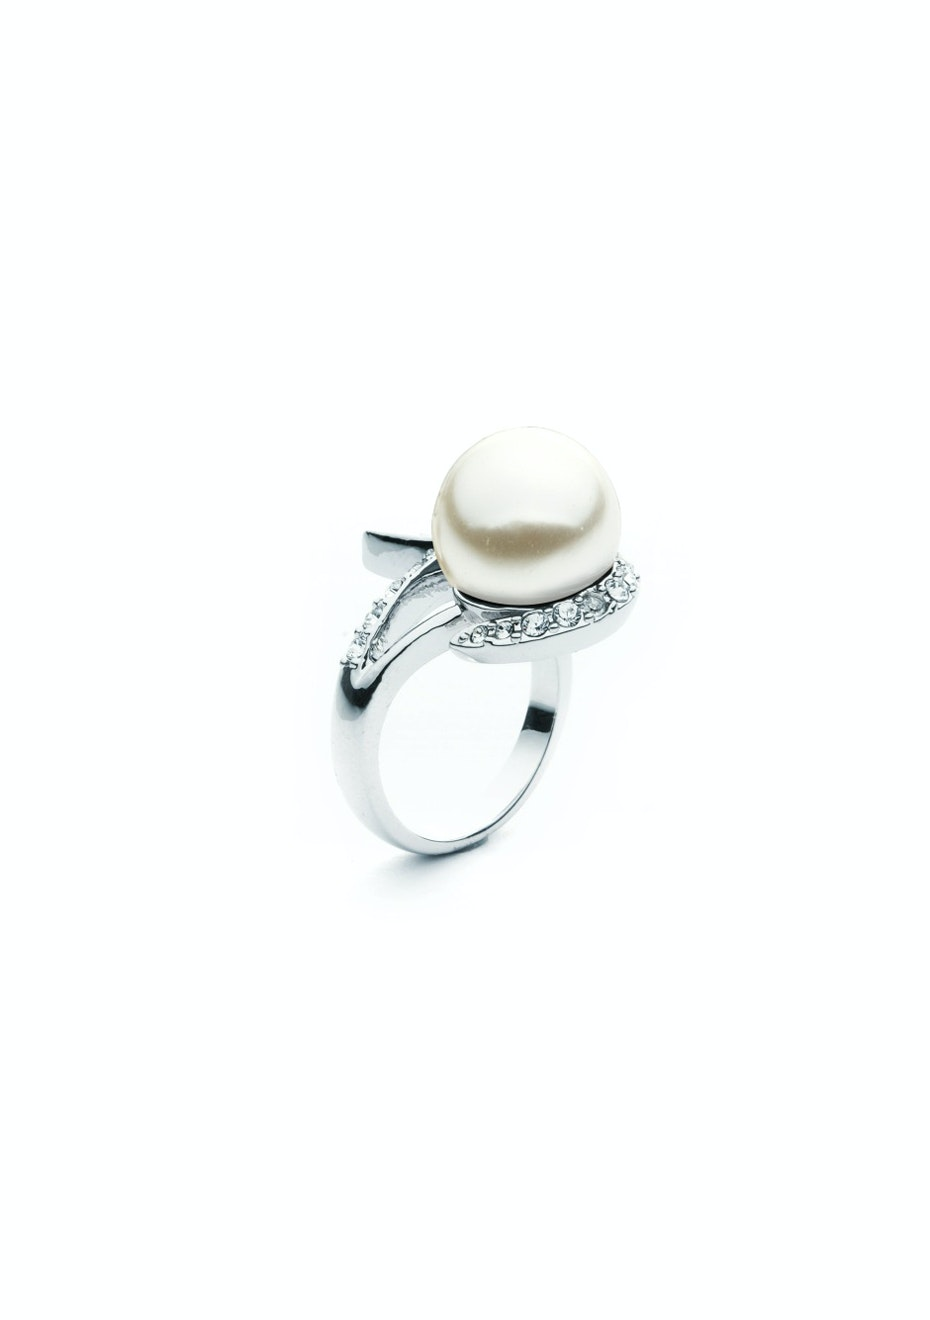 Pearl Encusted Ring Embellished with Crystals from Swarovski